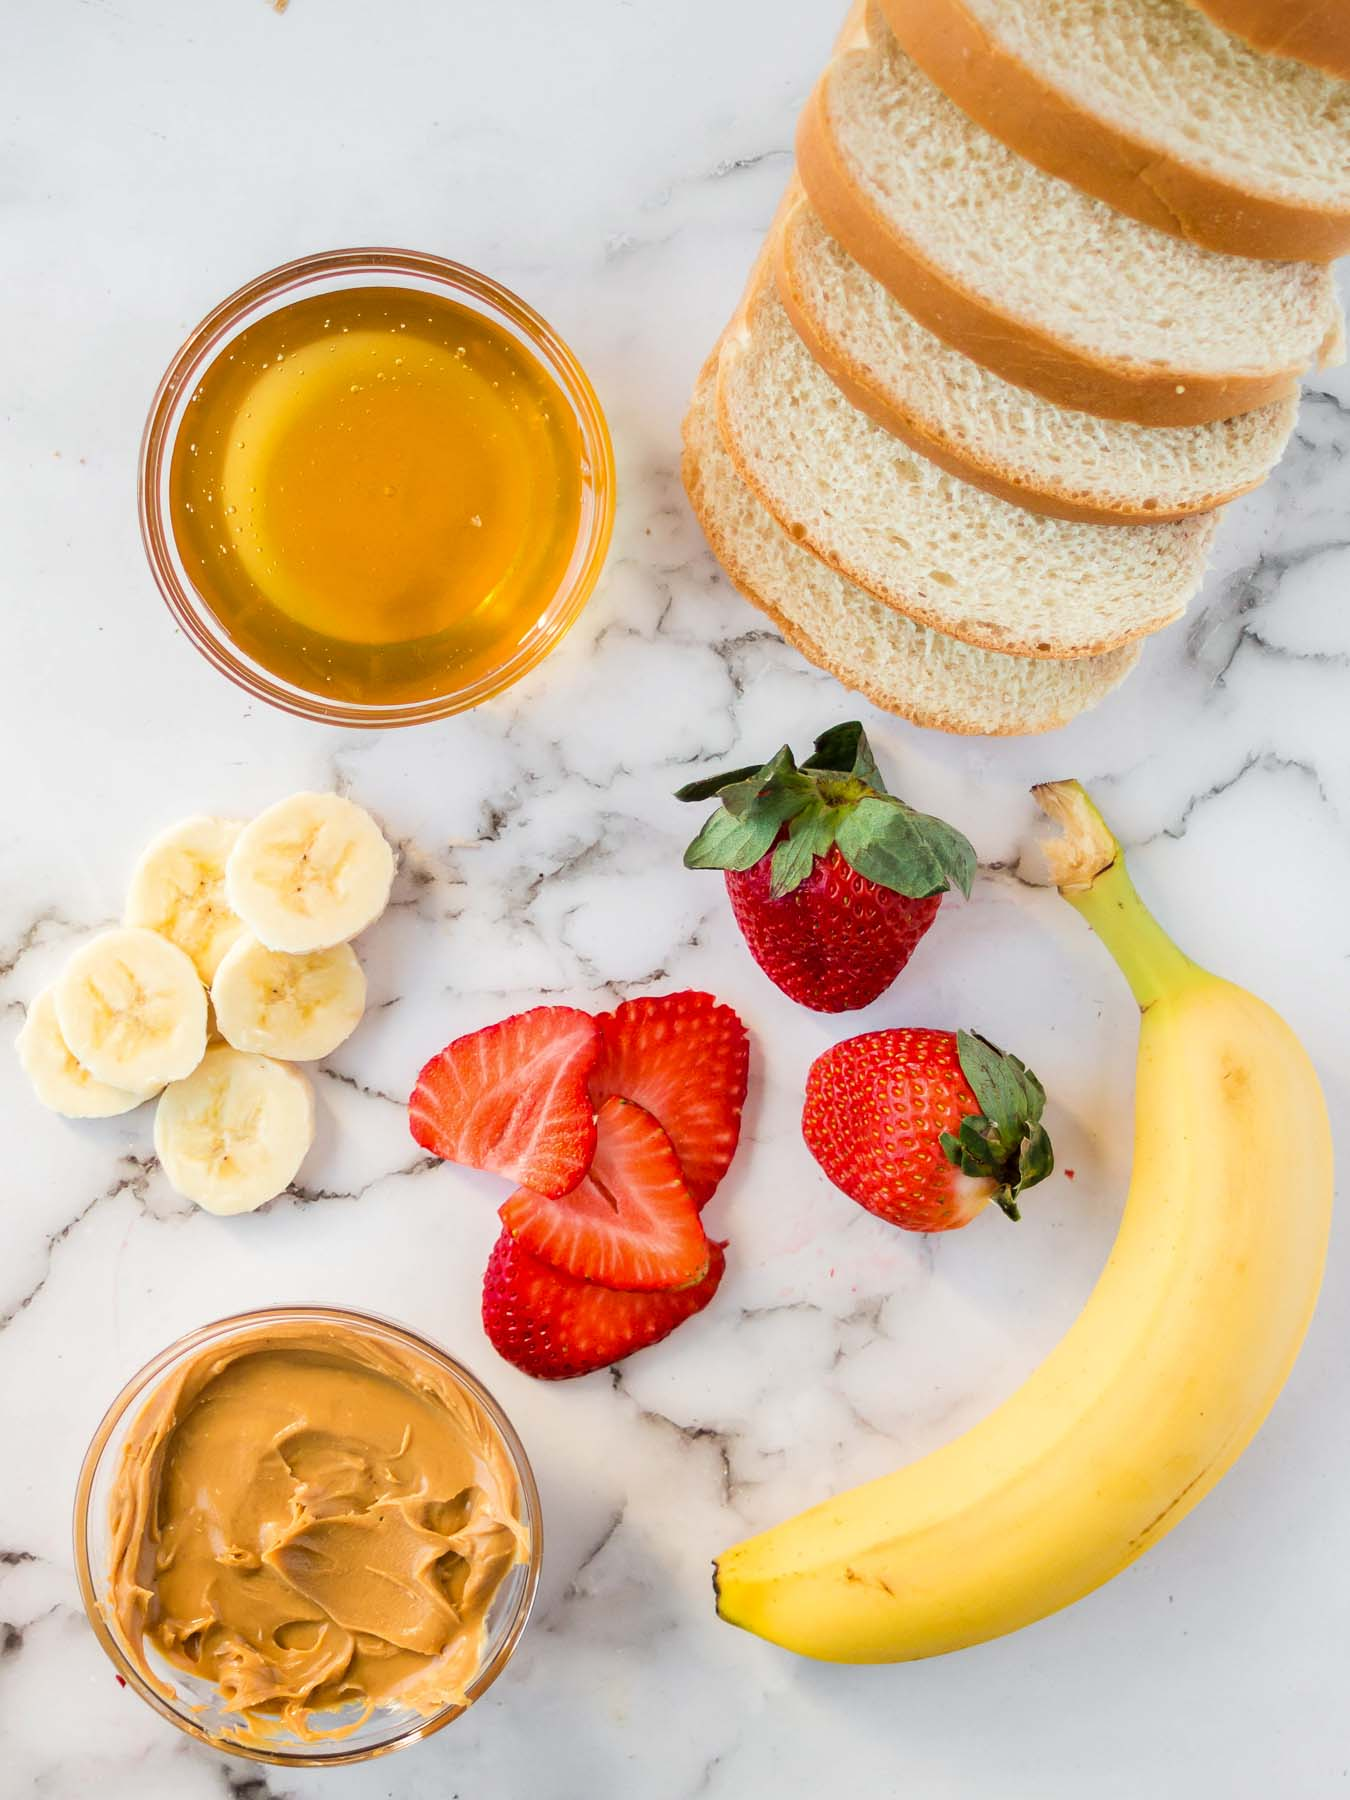 Ingredients to make grilled peanut butter honey banana sandwiches.